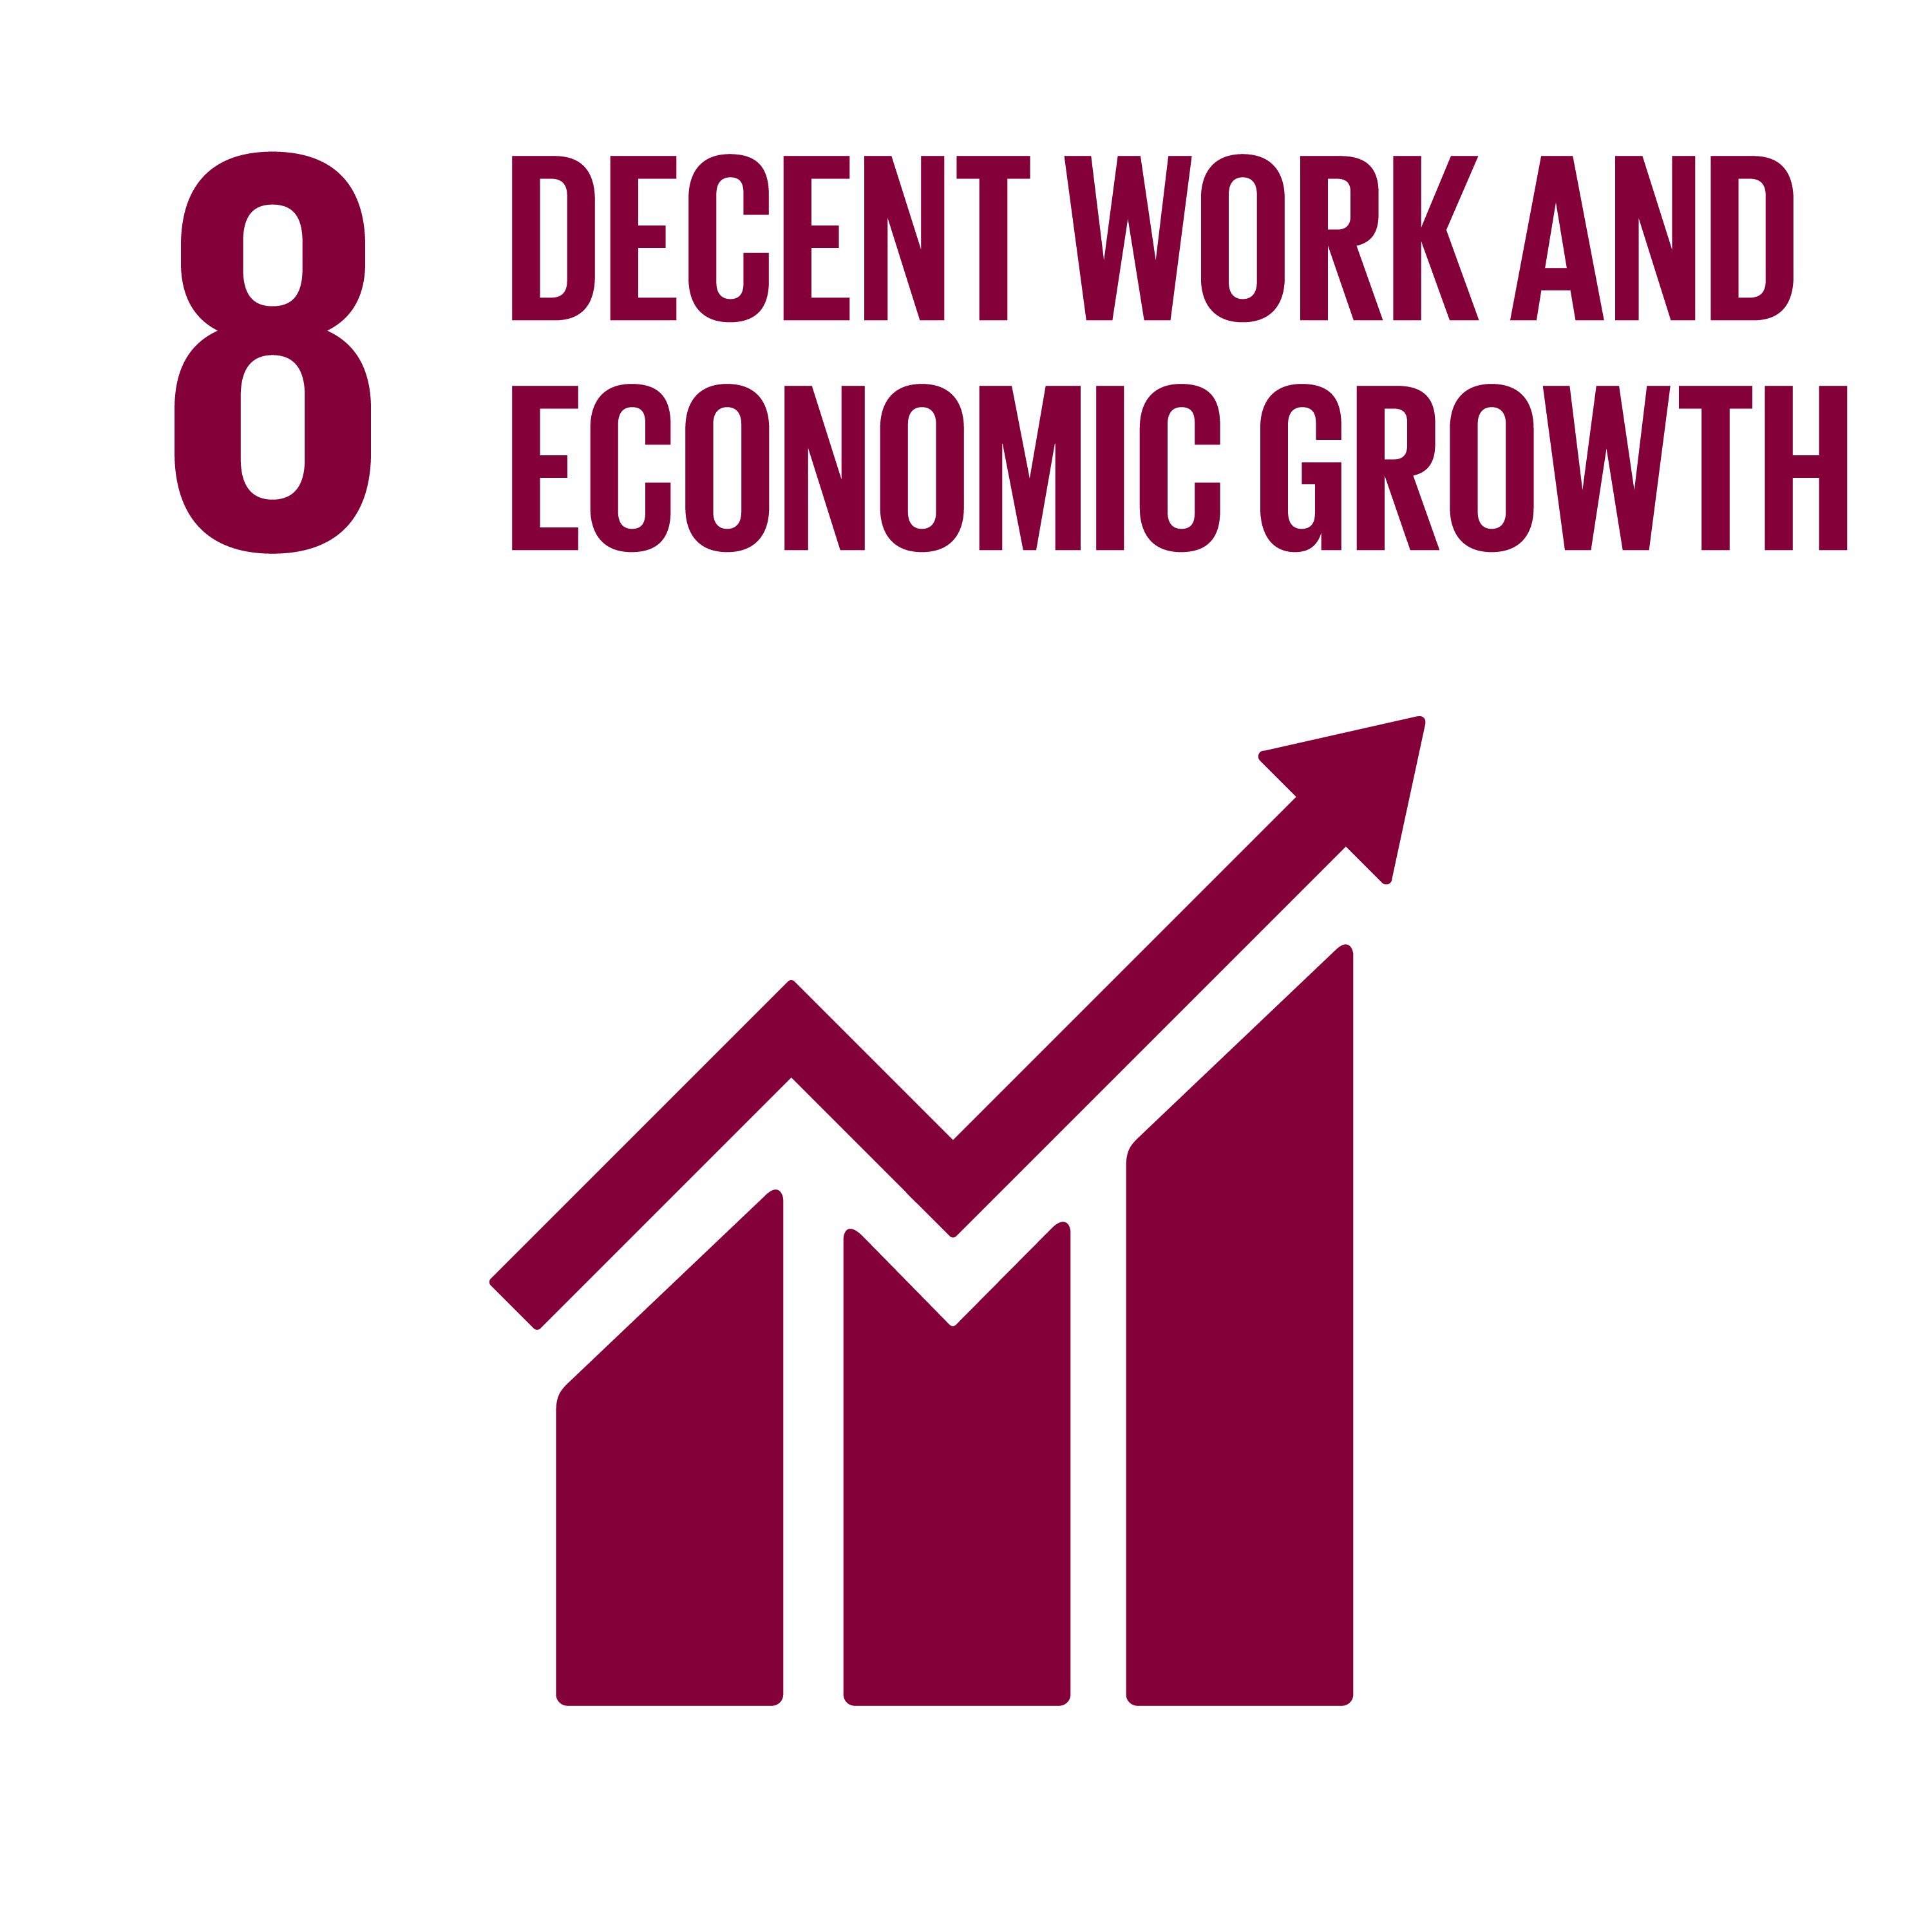 Sustainable development goals: Decent work and economic growth